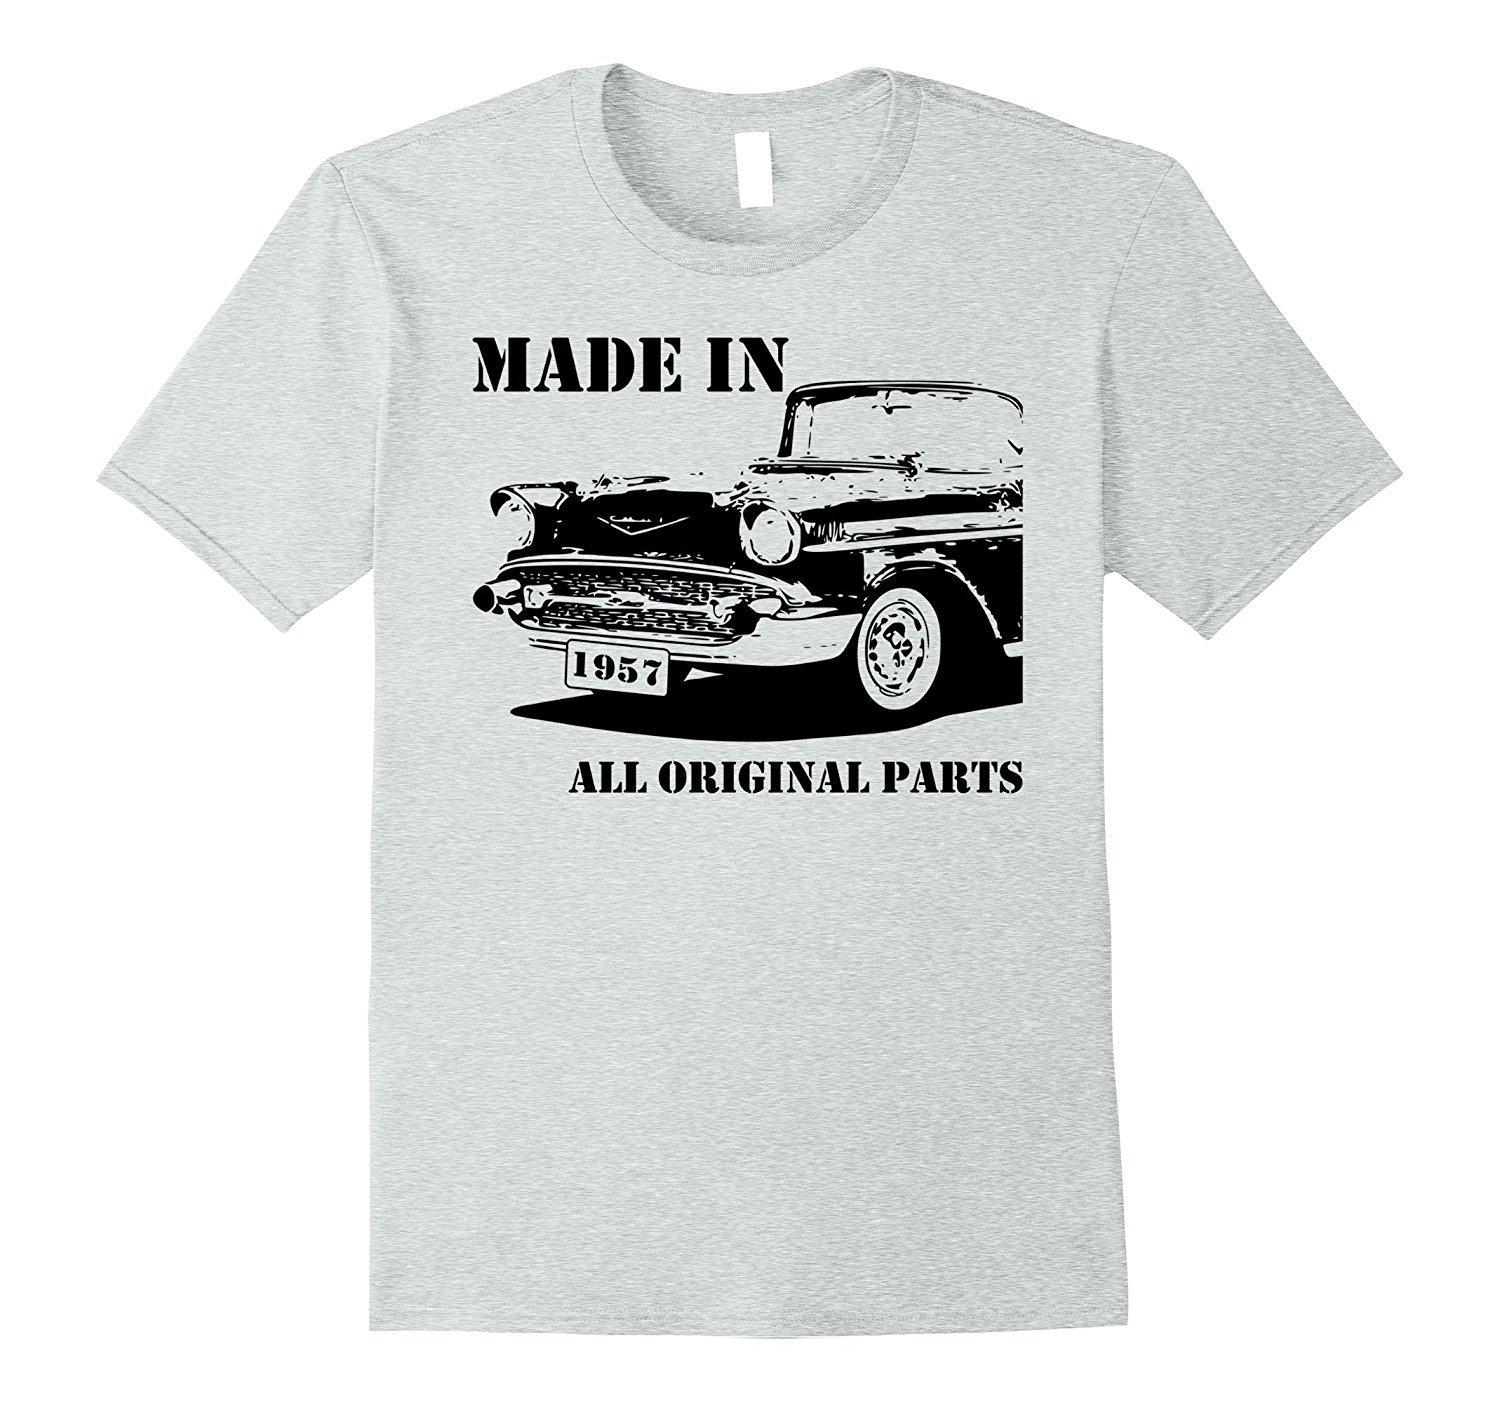 60th Birthday Vintage Car Made In 1957 Gift Idea Man T Shirt Print T Shirt Men Short Sleeve Top Tee Printed Pure Cotton Men'S Fitted Shirts T Shirt Sale ...